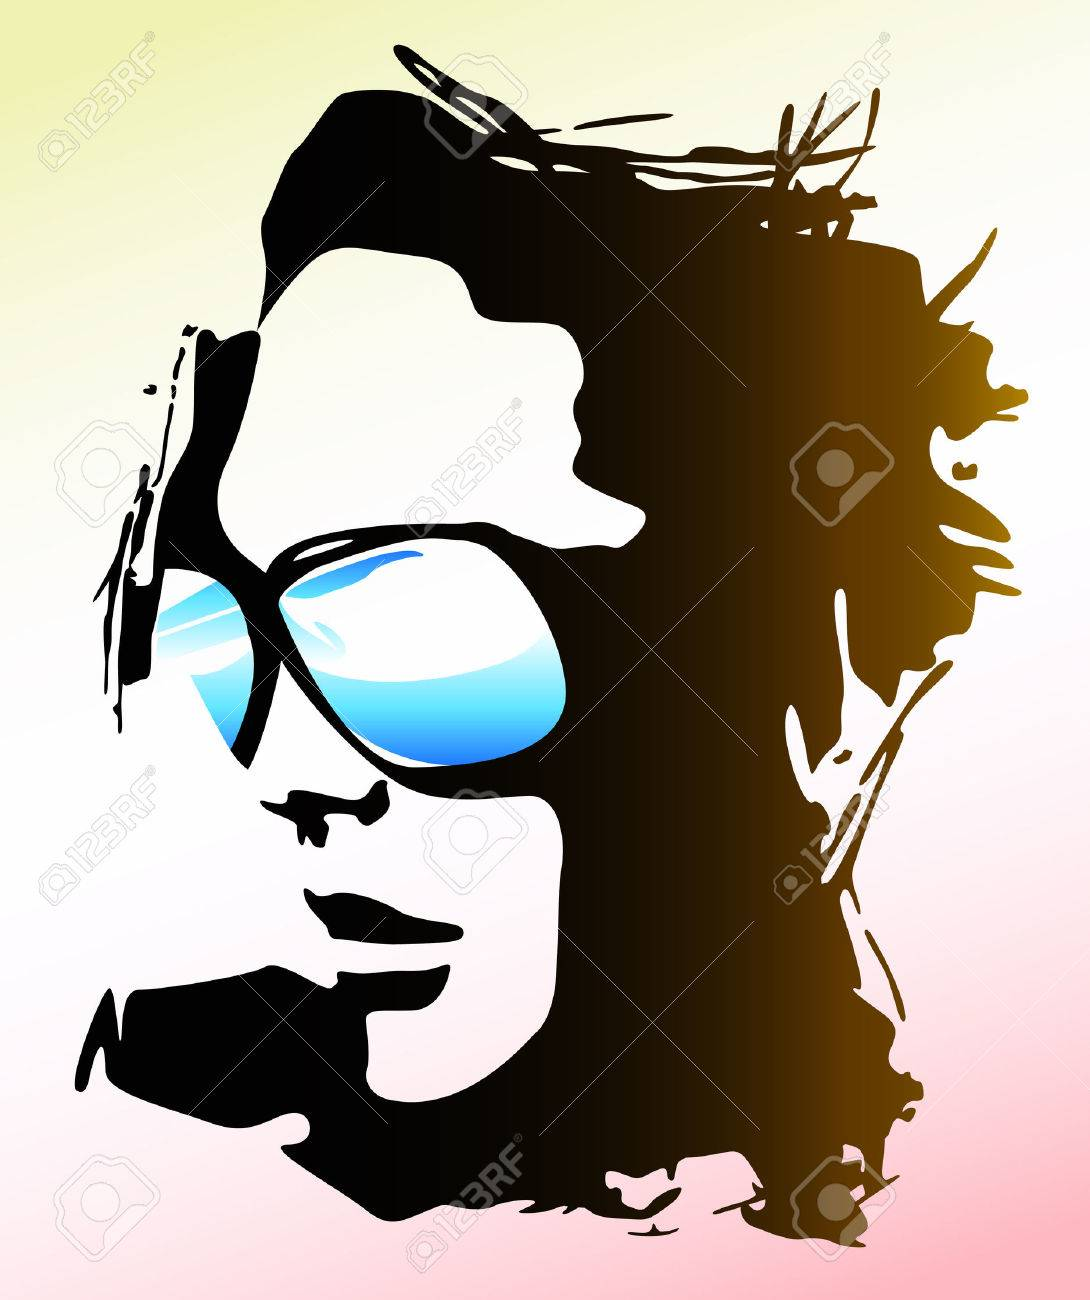 woman wearing sunglasses illustration Stock Vector - 5387846